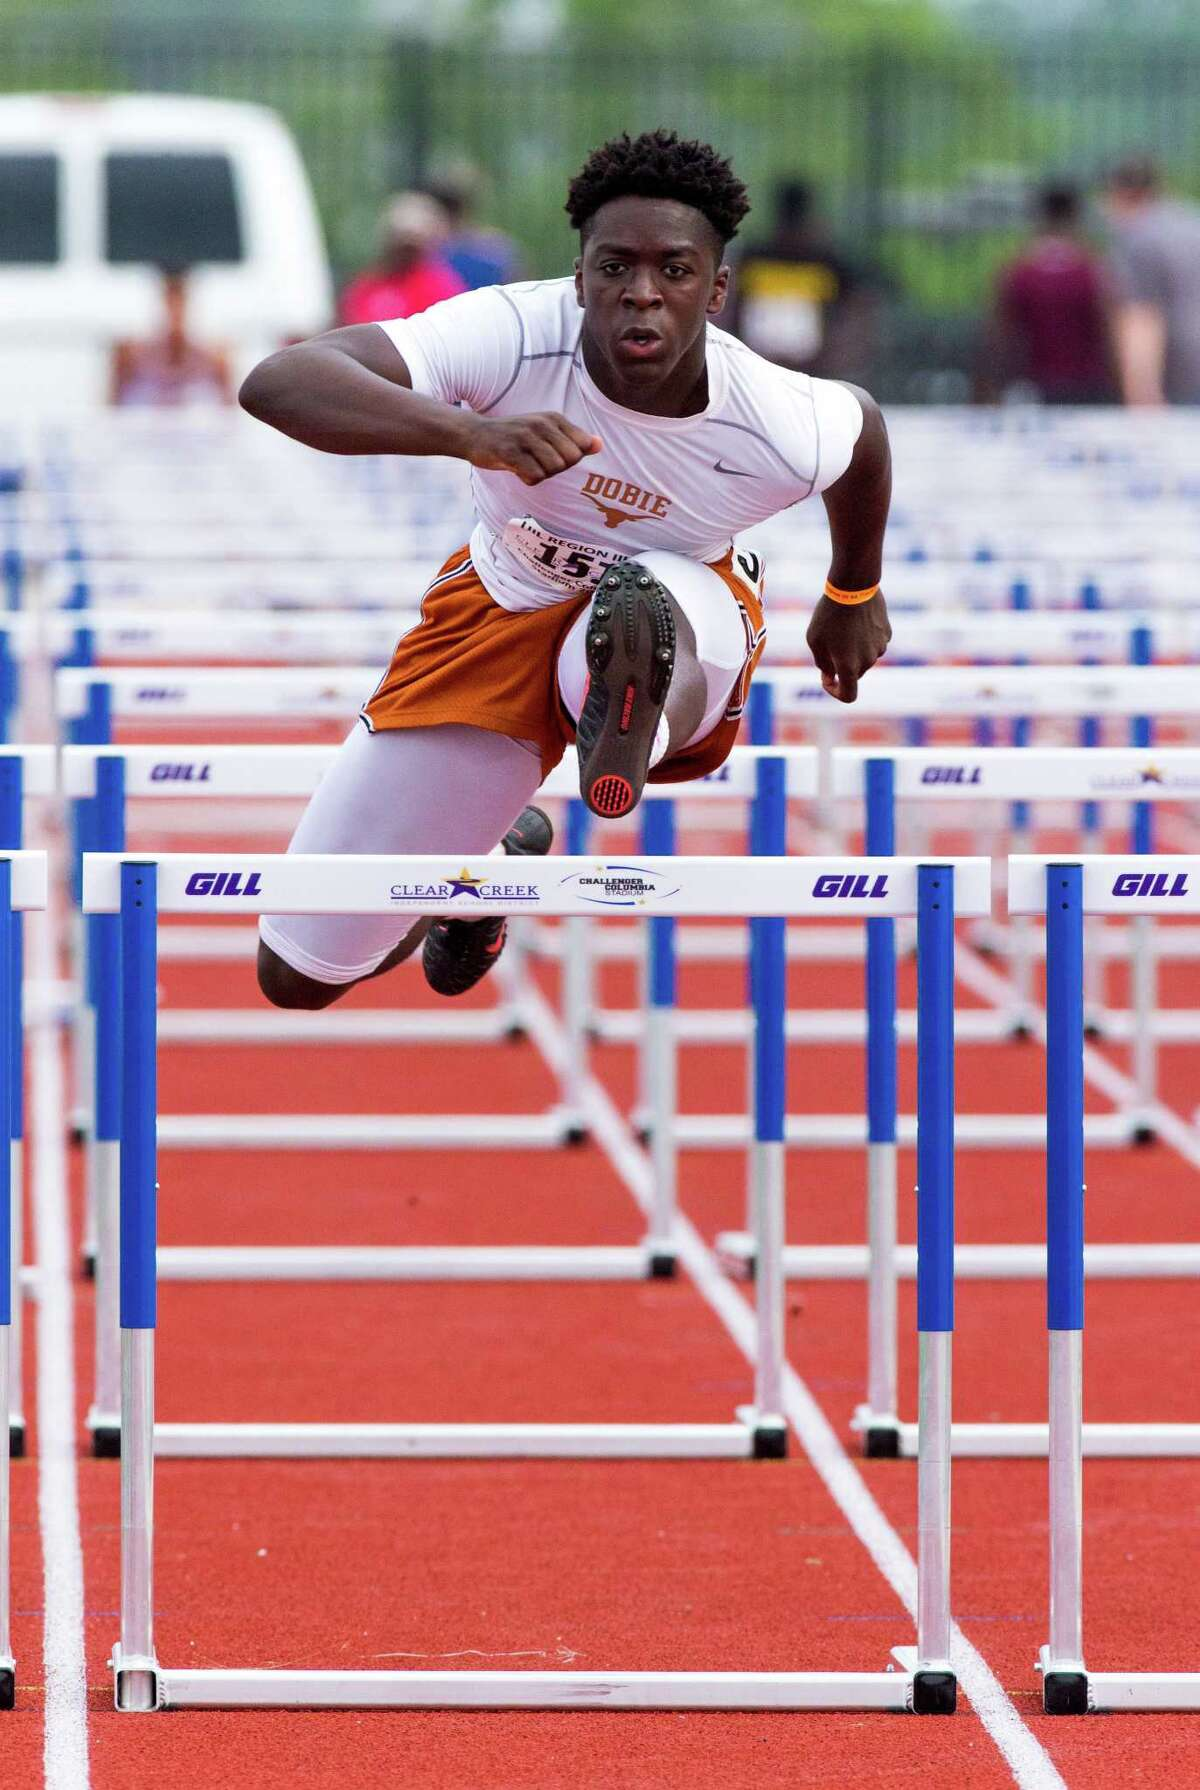 Jeremy Davis of Pasadena Dobie leaping over the hurdles during the 110 M Hurdles competition during UIL Region II 6-A Track & Field Championship at the Challenger Columbia Stadium, Friday, Apr. 29, 2016, in Houston. (Juan DeLeon / For the Houston Chronicle)